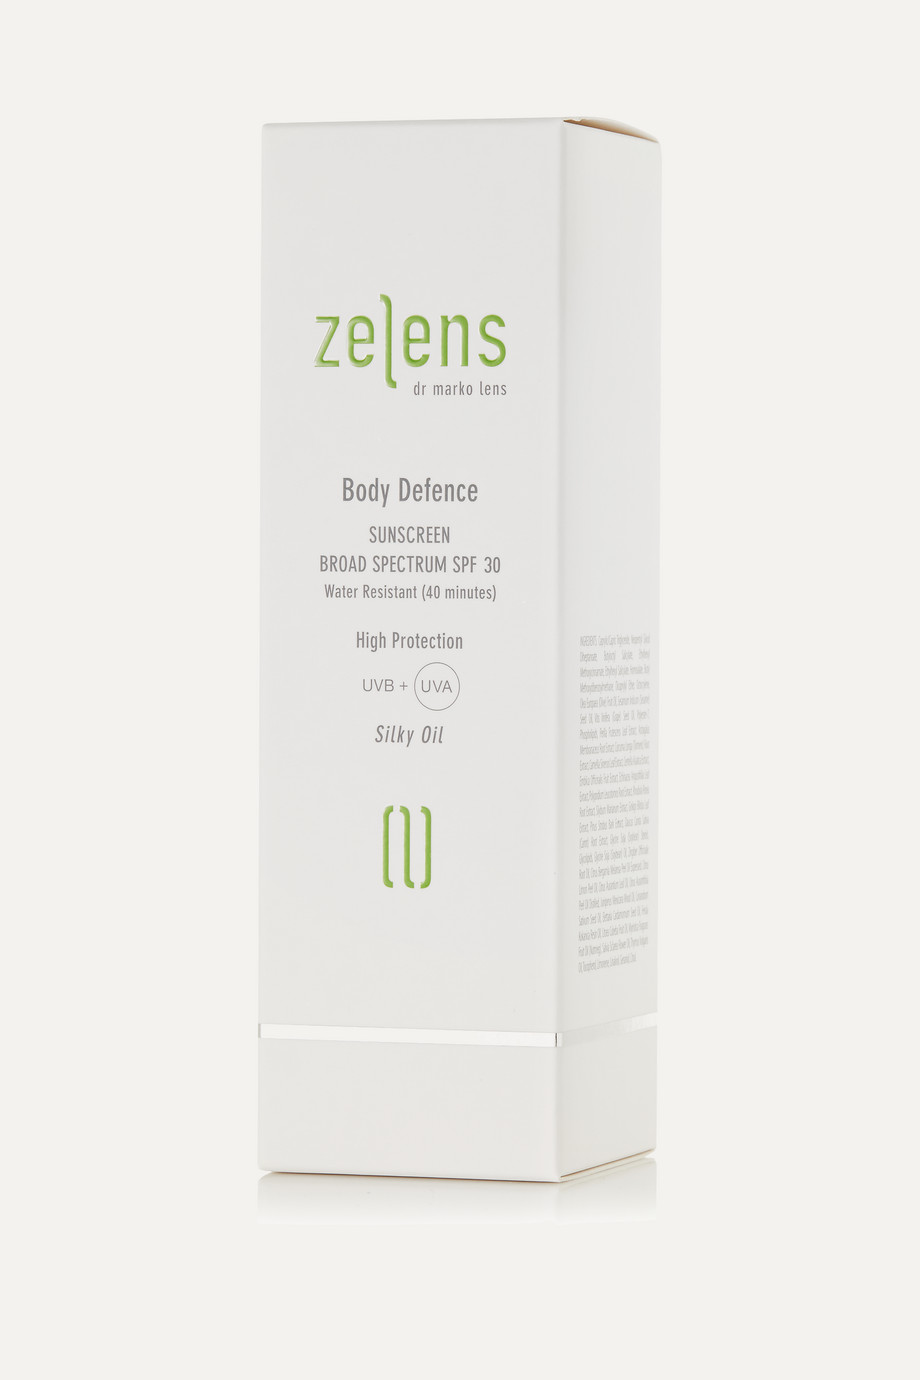 Zelens Body Defence Sunscreen LSF 30, 125 ml – Sonnenöl